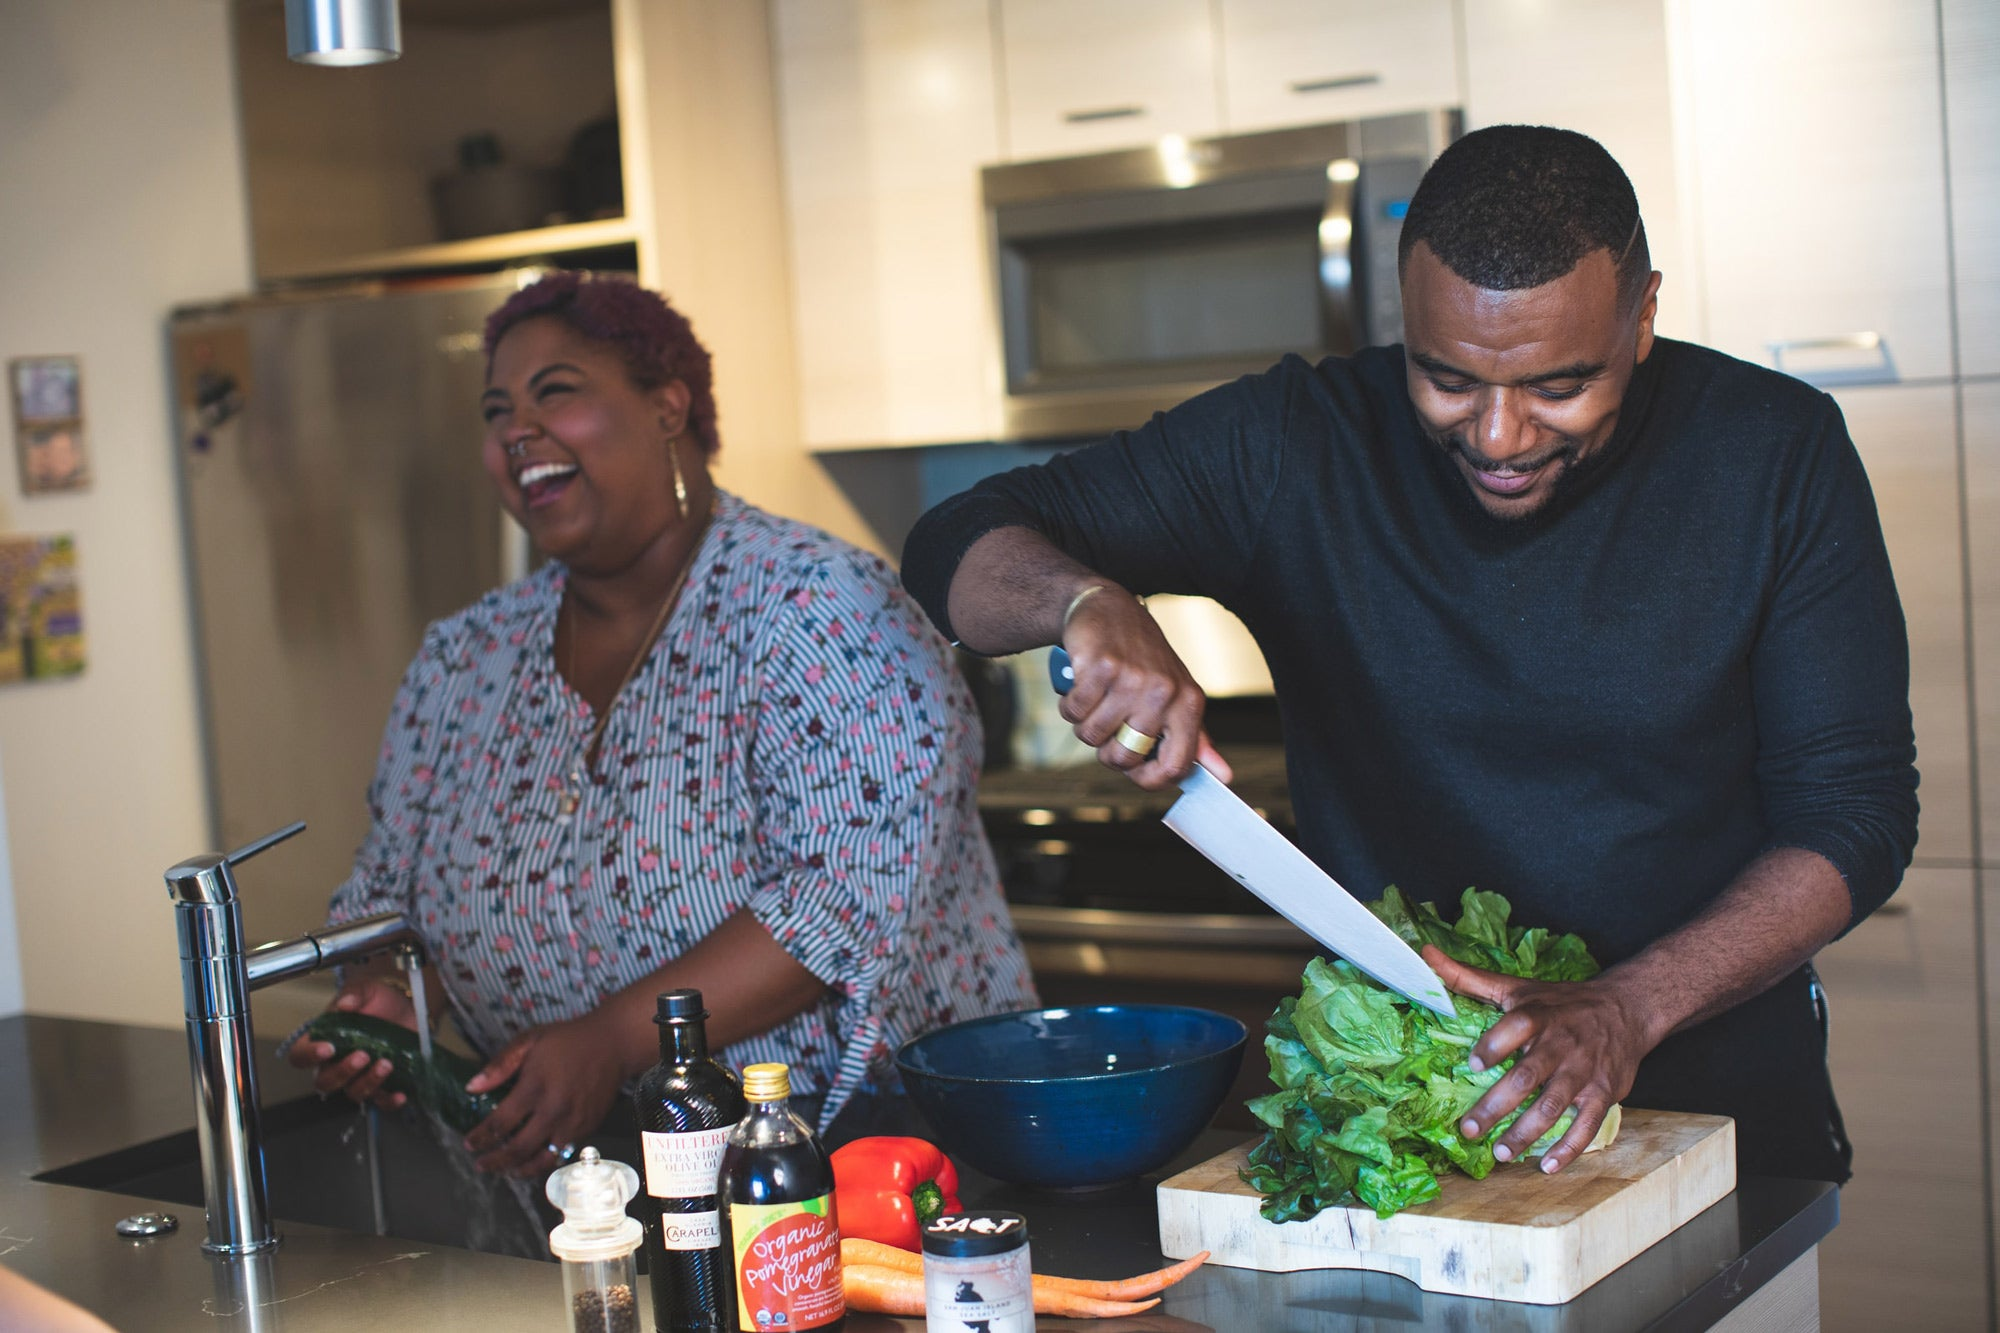 Black man and woman couple cooking with salad ingredients in kitchen